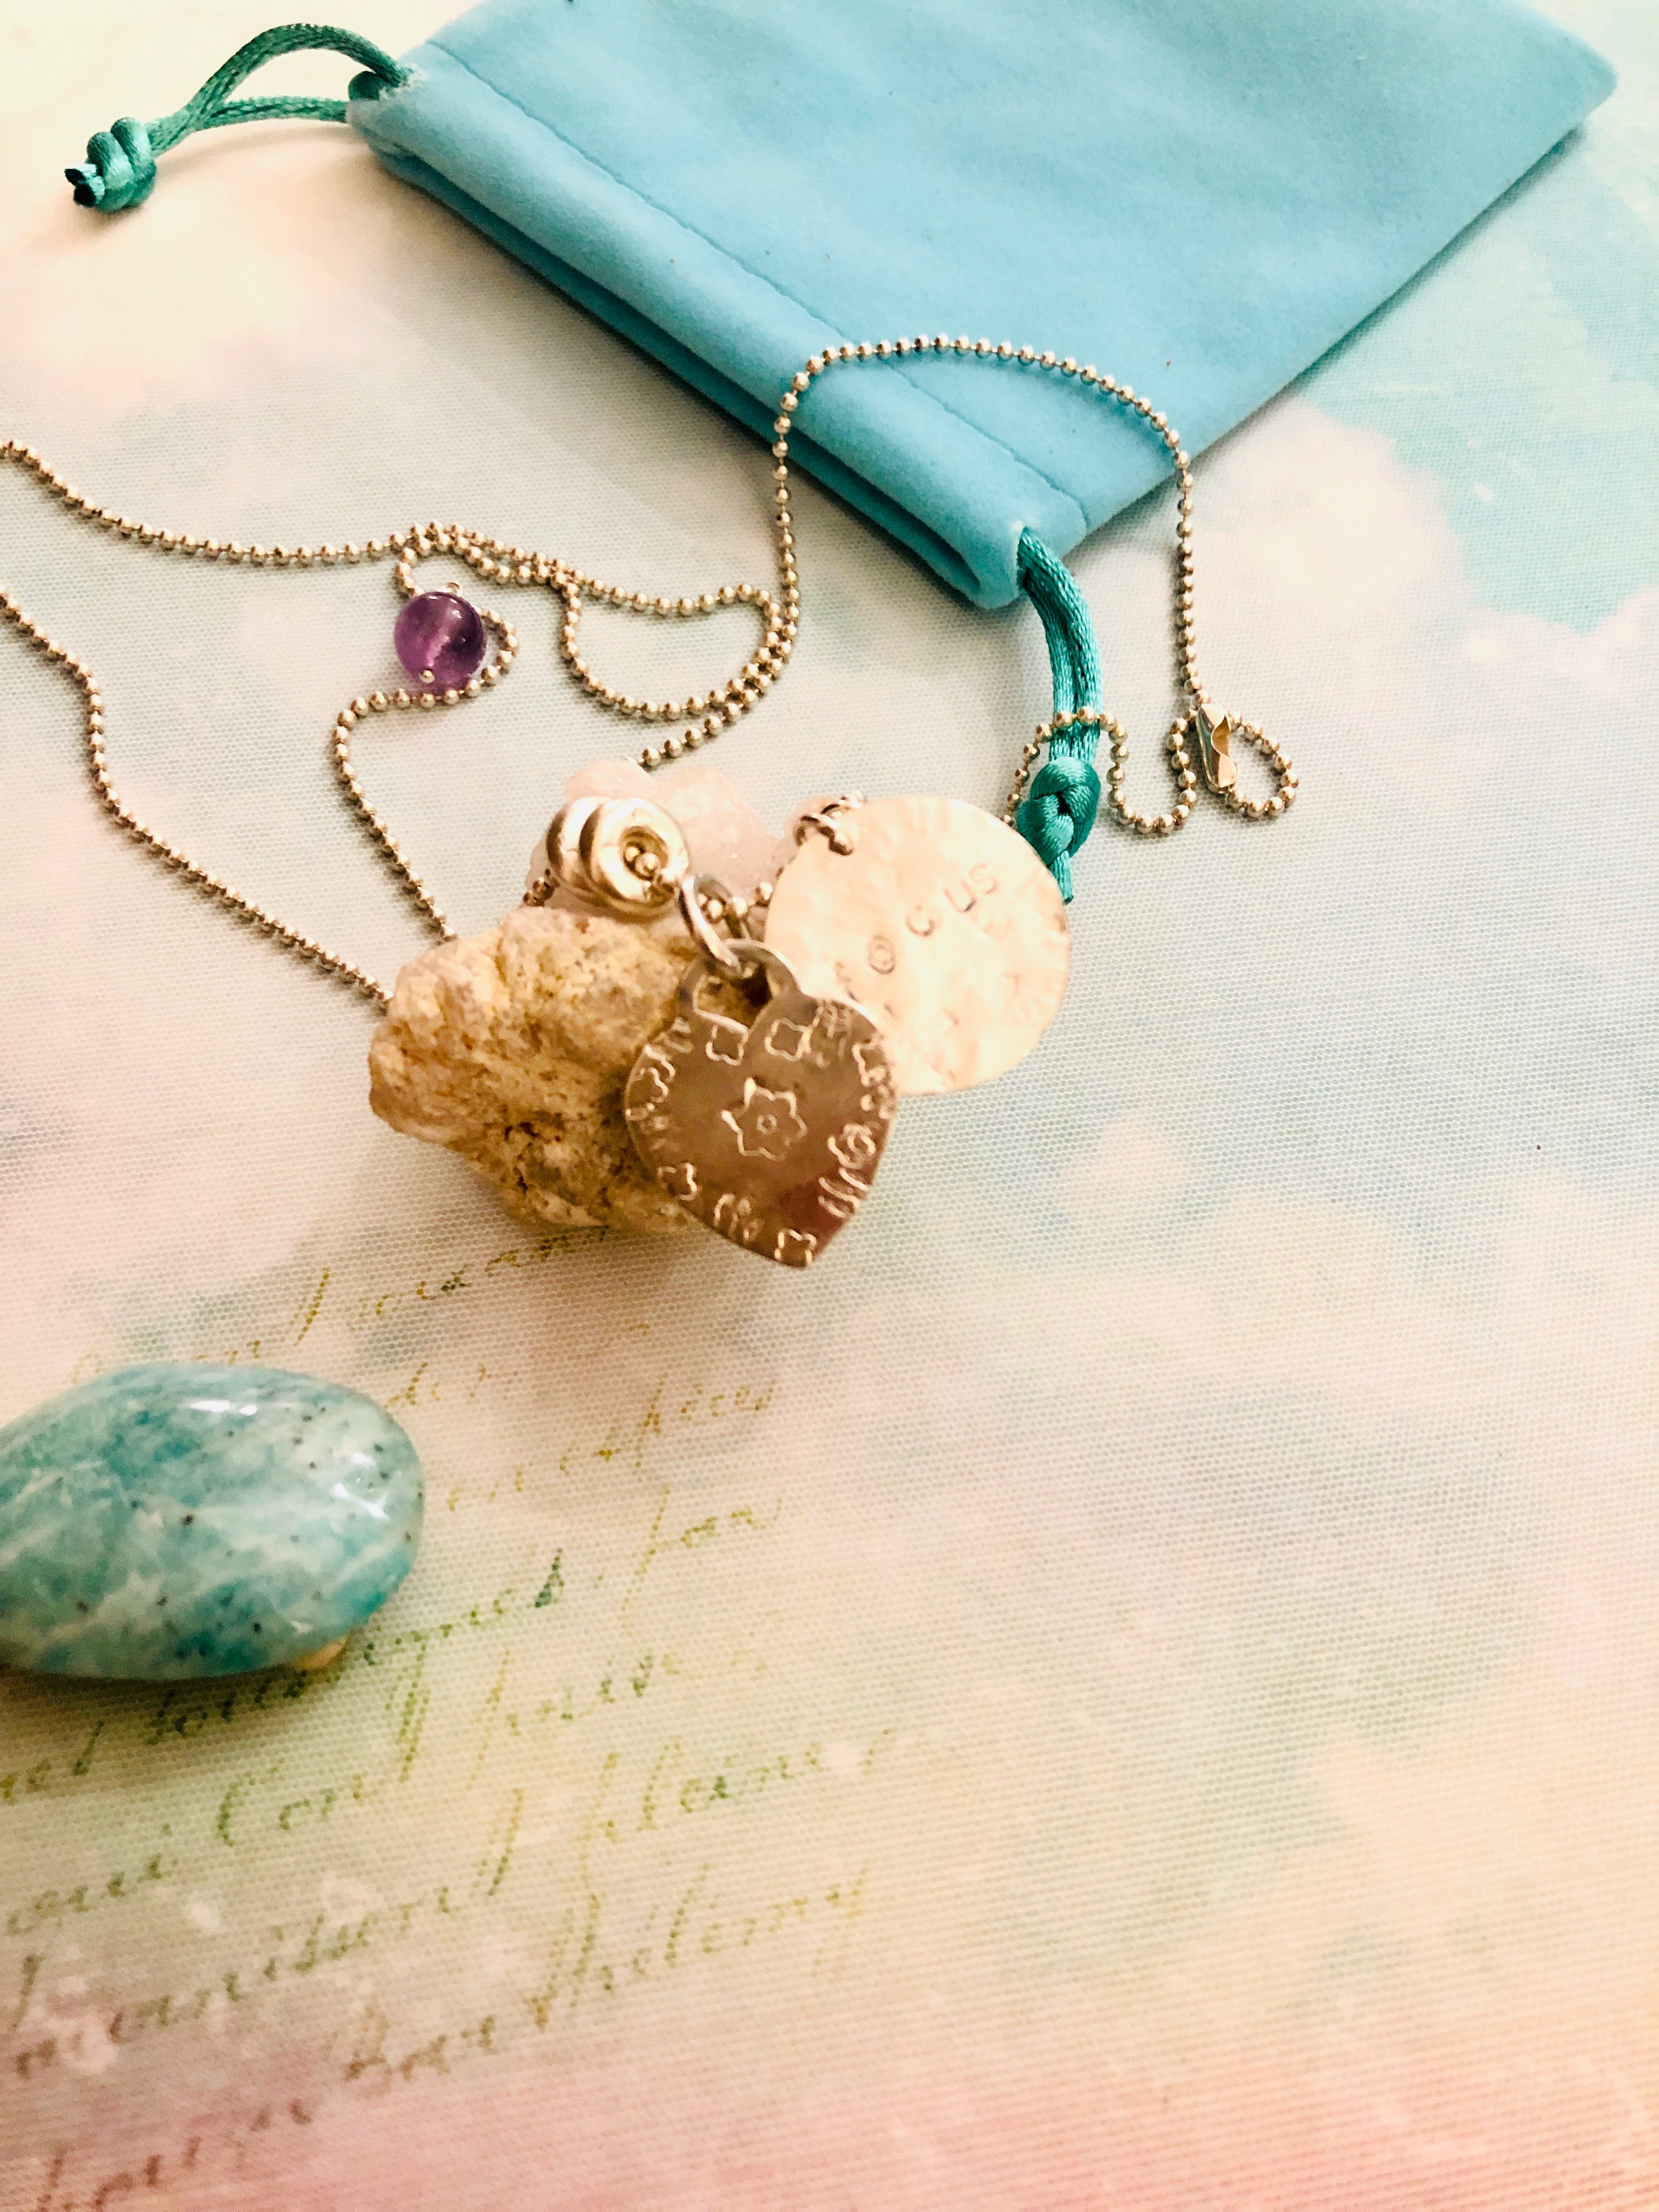 Make Your Own Manifestation Necklace Workshop - Accommodation Tasmania